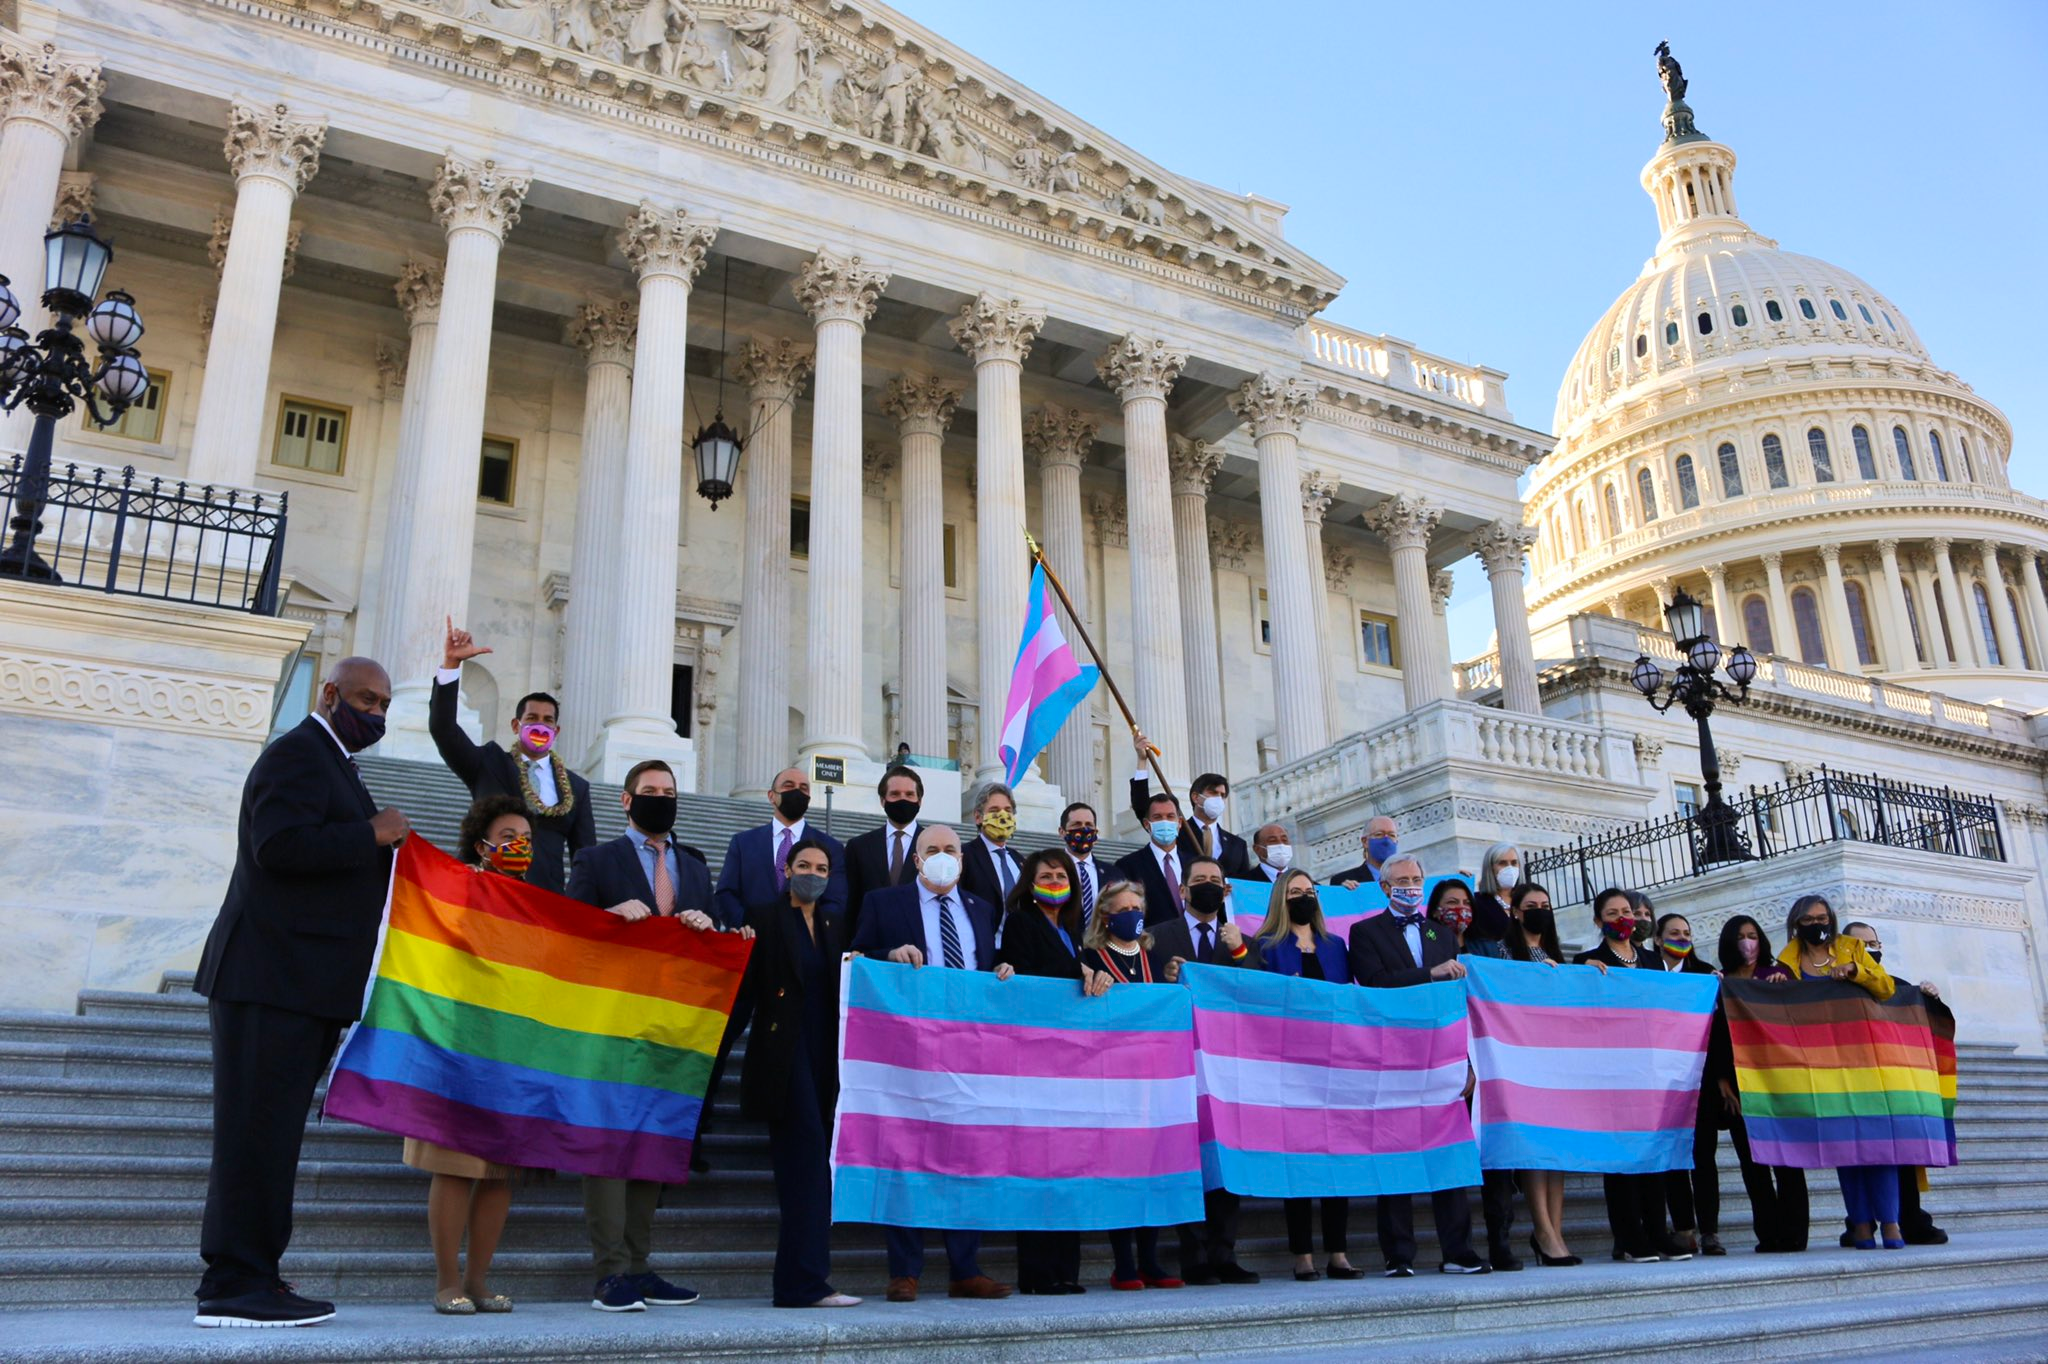 As Equality Act passes in U.S. House, state LGBTQ advocates continue push for local protections as well